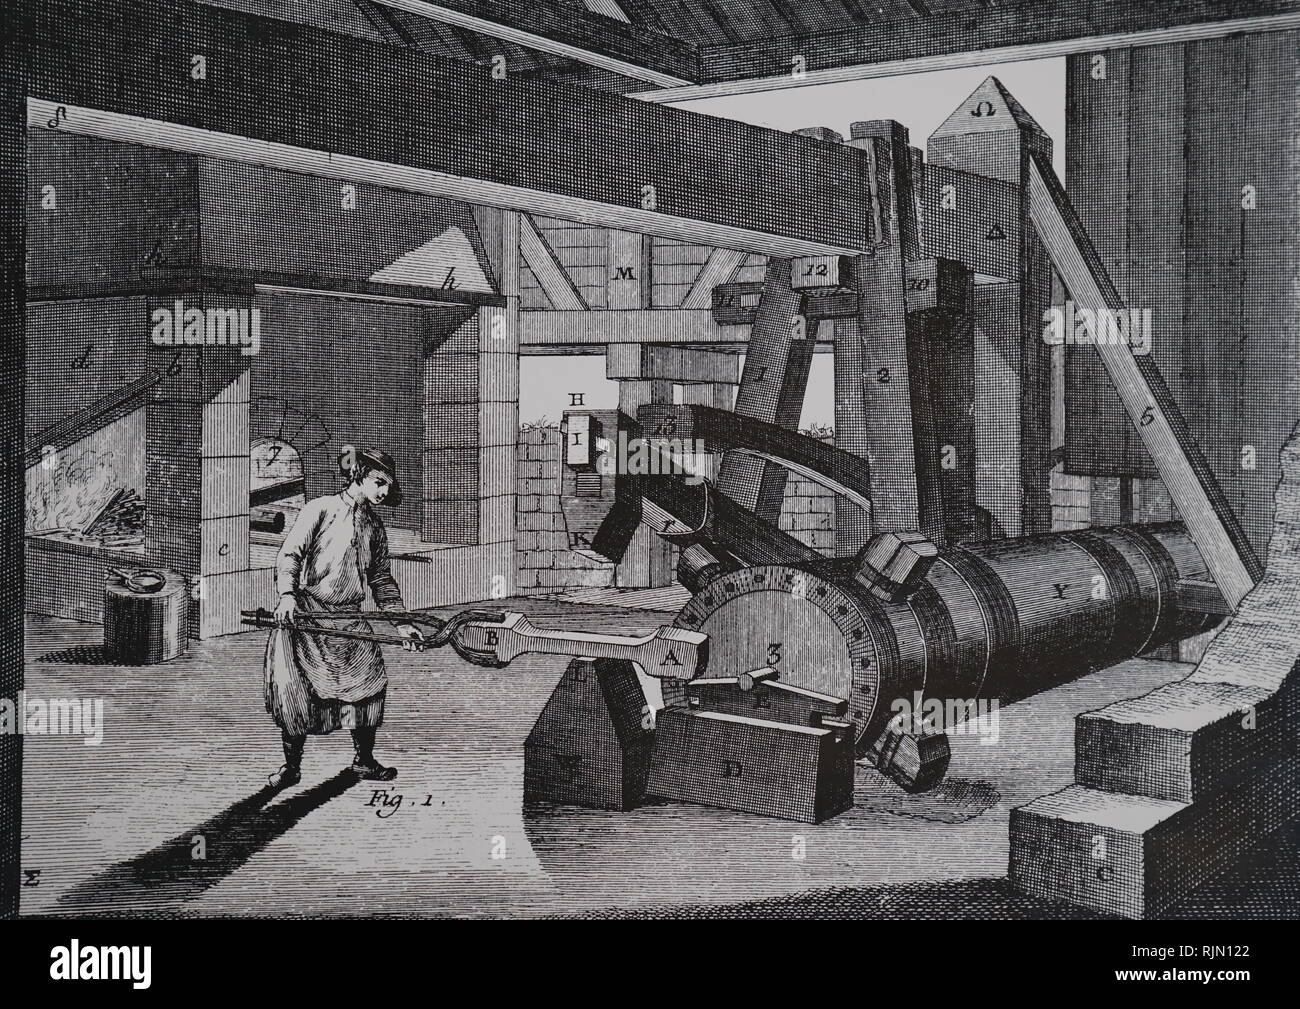 Forging the bloom - one of the stages in purifying pig iron to make it suitable for wrought iron work. The forge hammer is operated by a cam mechanism, and the camshaft is turned by a voter wheel. From Denis Diderot 'Encyclopedie', Paris, 1751-80 - Stock Image